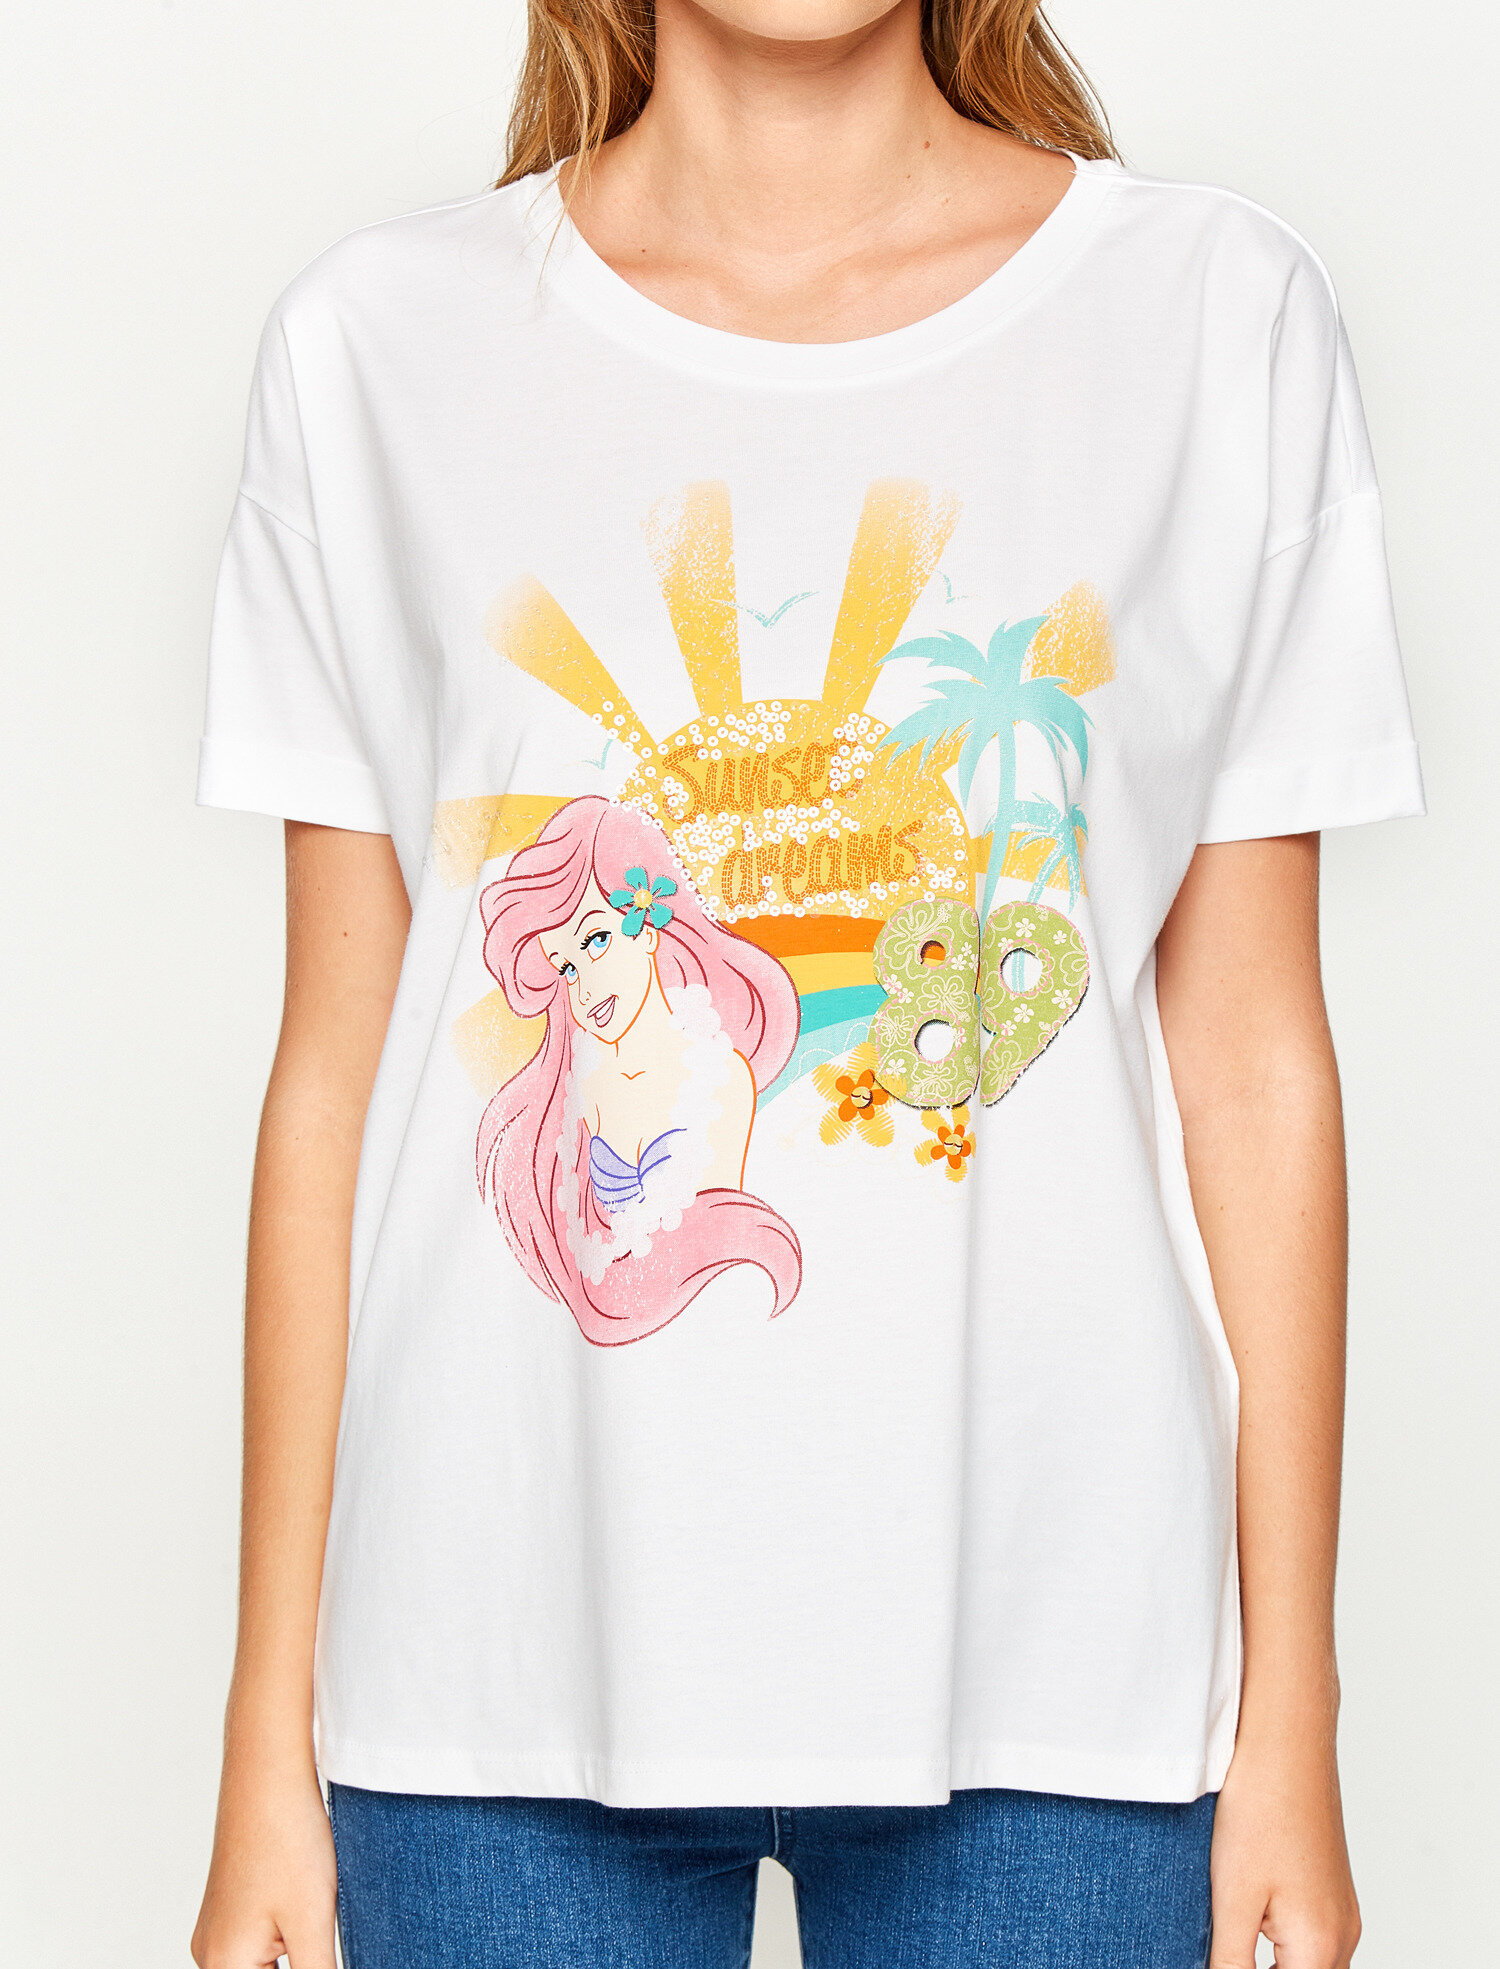 the little mermaid printed t-shirt. pic 1; pic 2; pic 3 ...